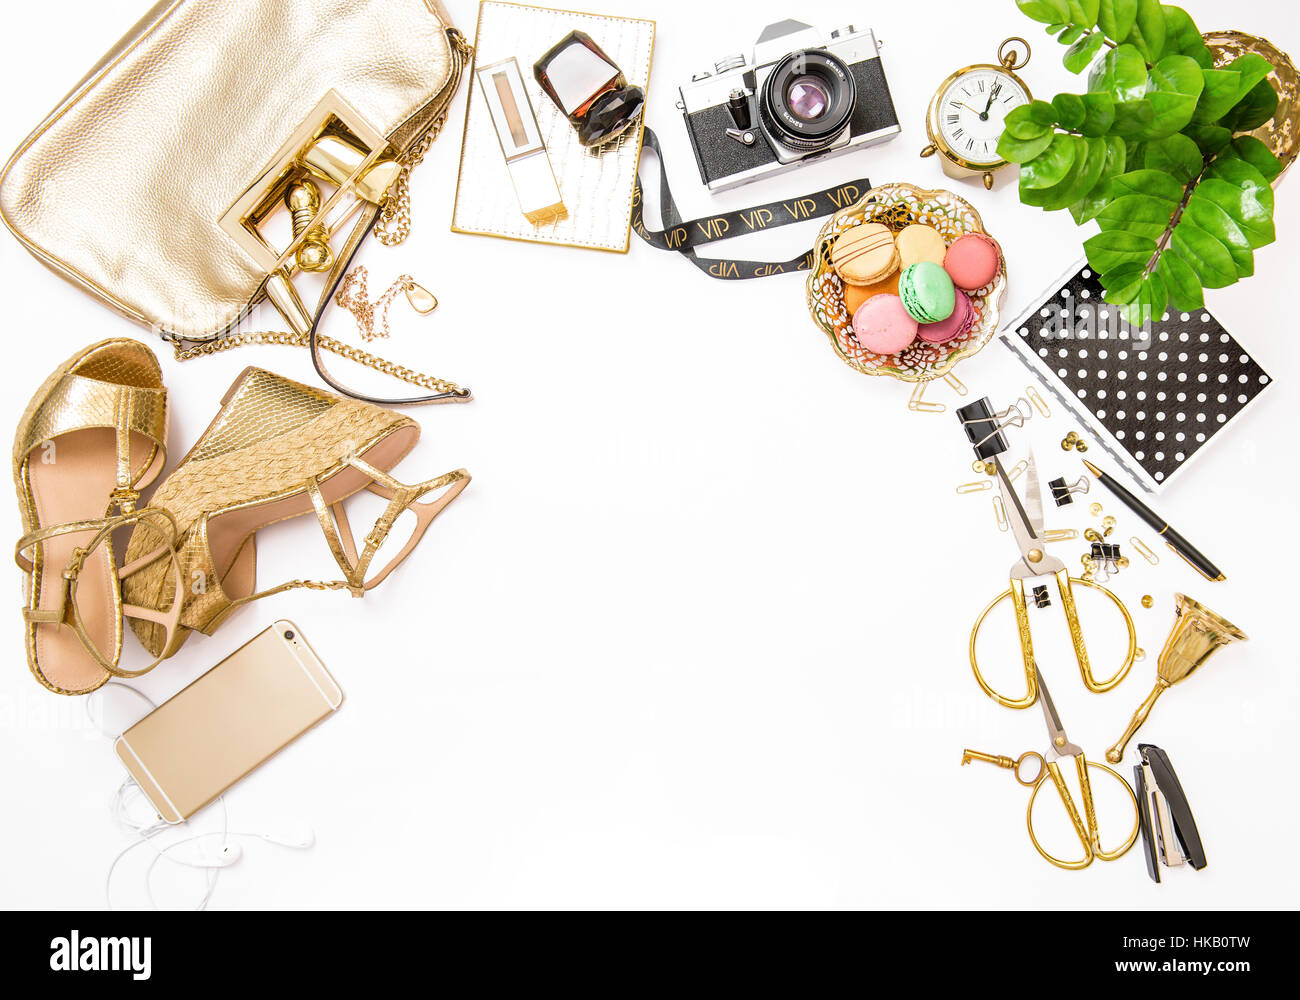 Fashion Flat Lay For Web Site Social Media. Feminine Accessories, Bag,  Shoes, Office Supplies, IPhone And Green Plant On White Table Background